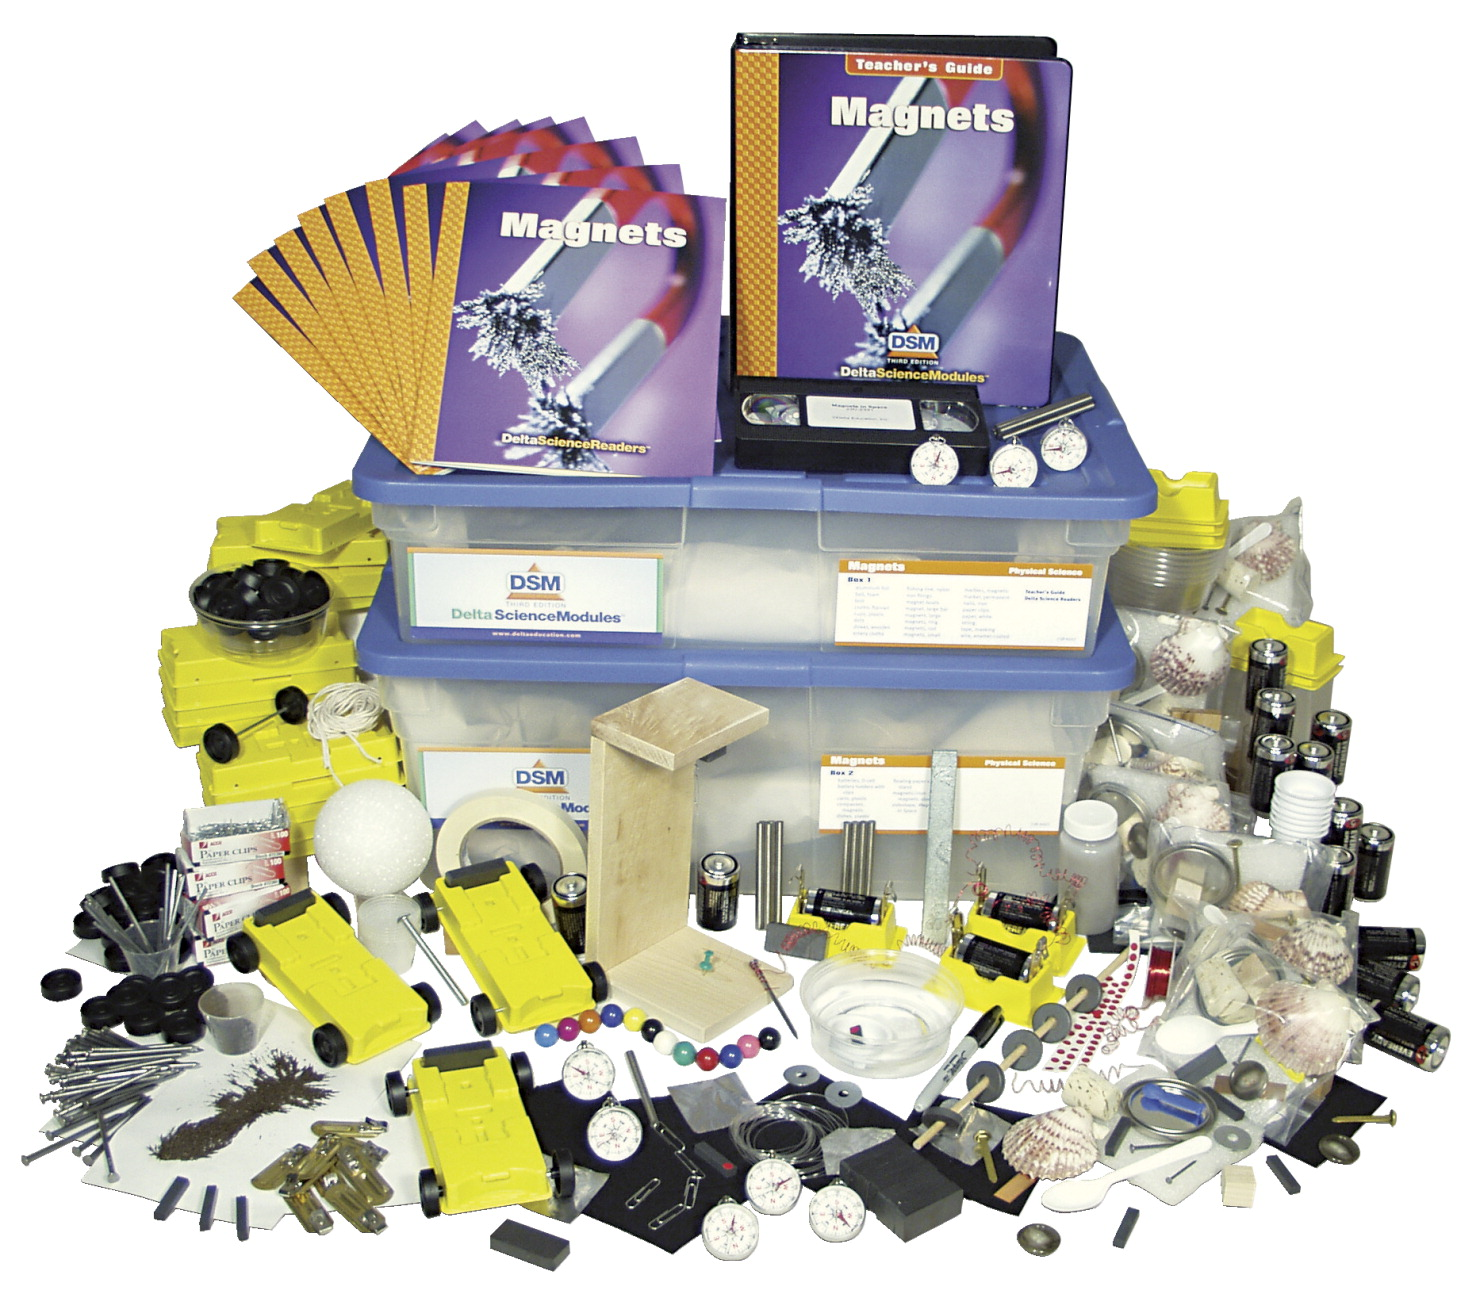 Delta Science Module DSM-3 Magnets Science Module Complete Kit